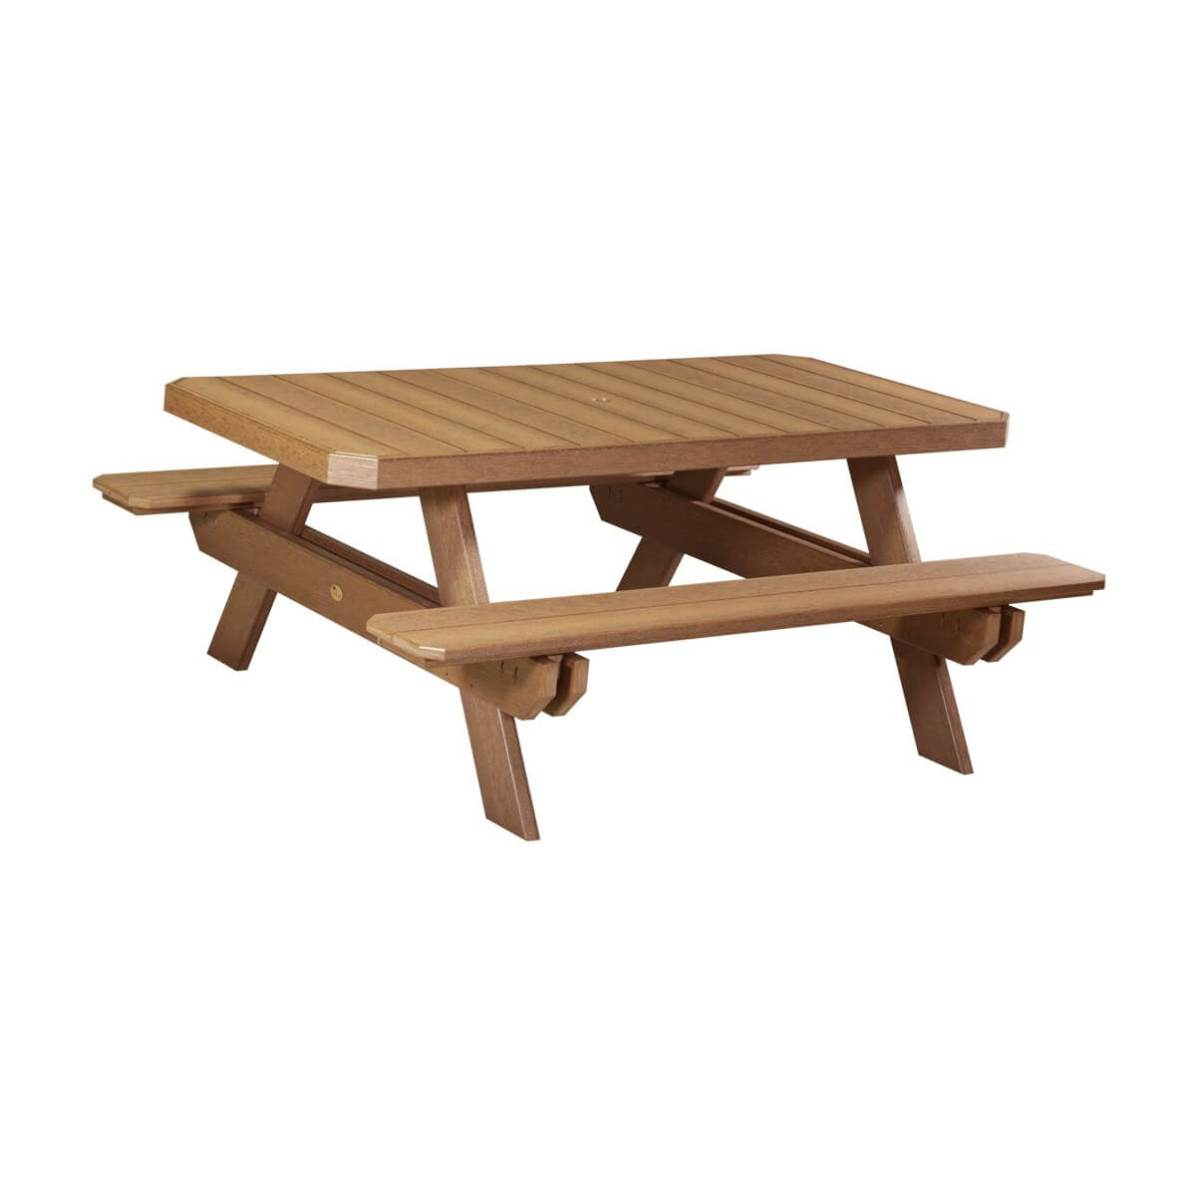 Luxcraft poly 6 rectangular picnic table hostetlers furniture luxcraft poly rectangular picnic table antique mahogany watchthetrailerfo